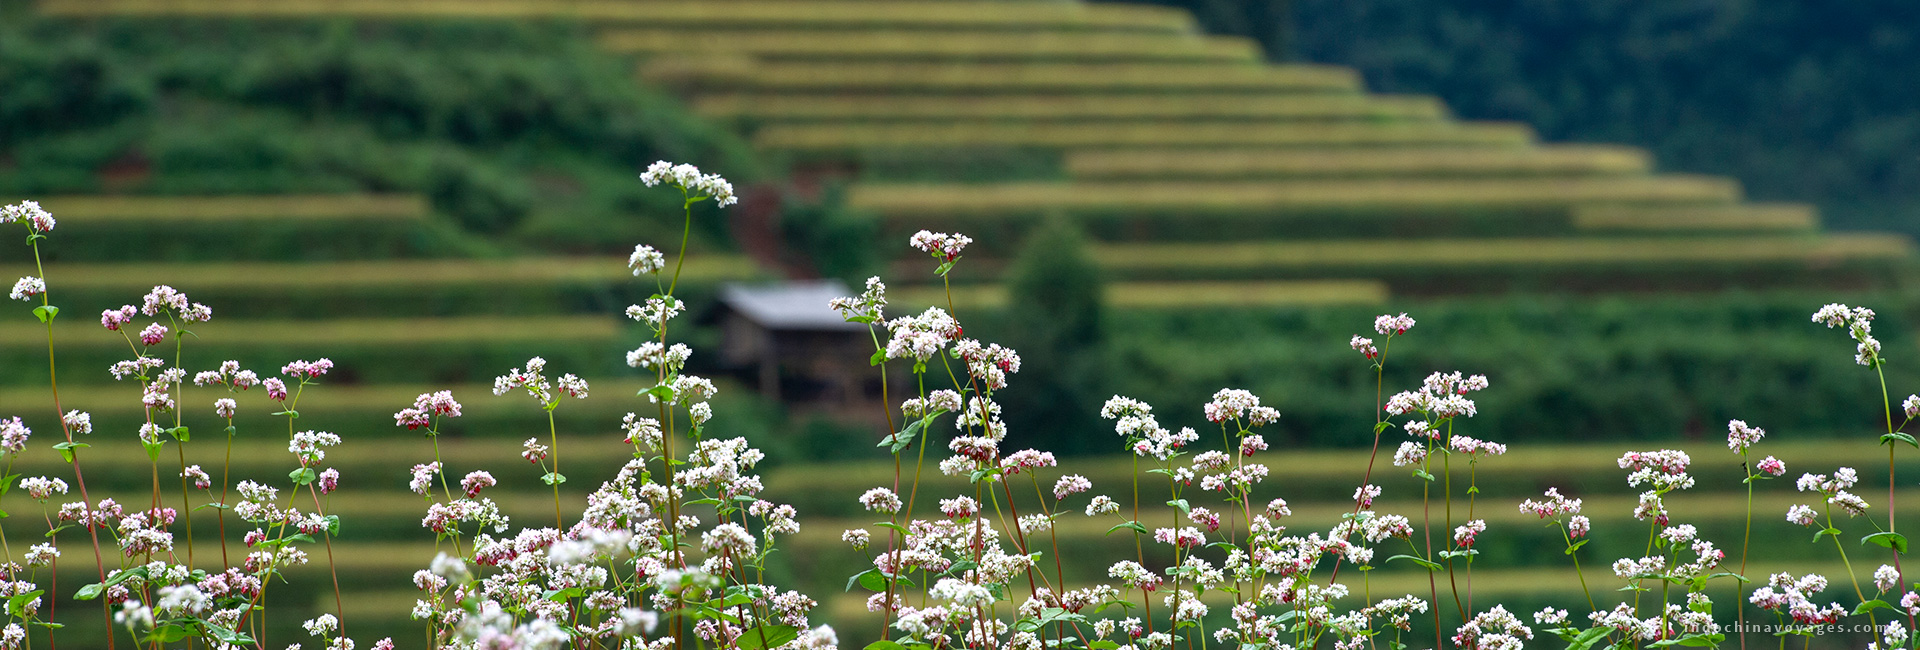 Ha Giang weather – Best time to visit Ha Giang